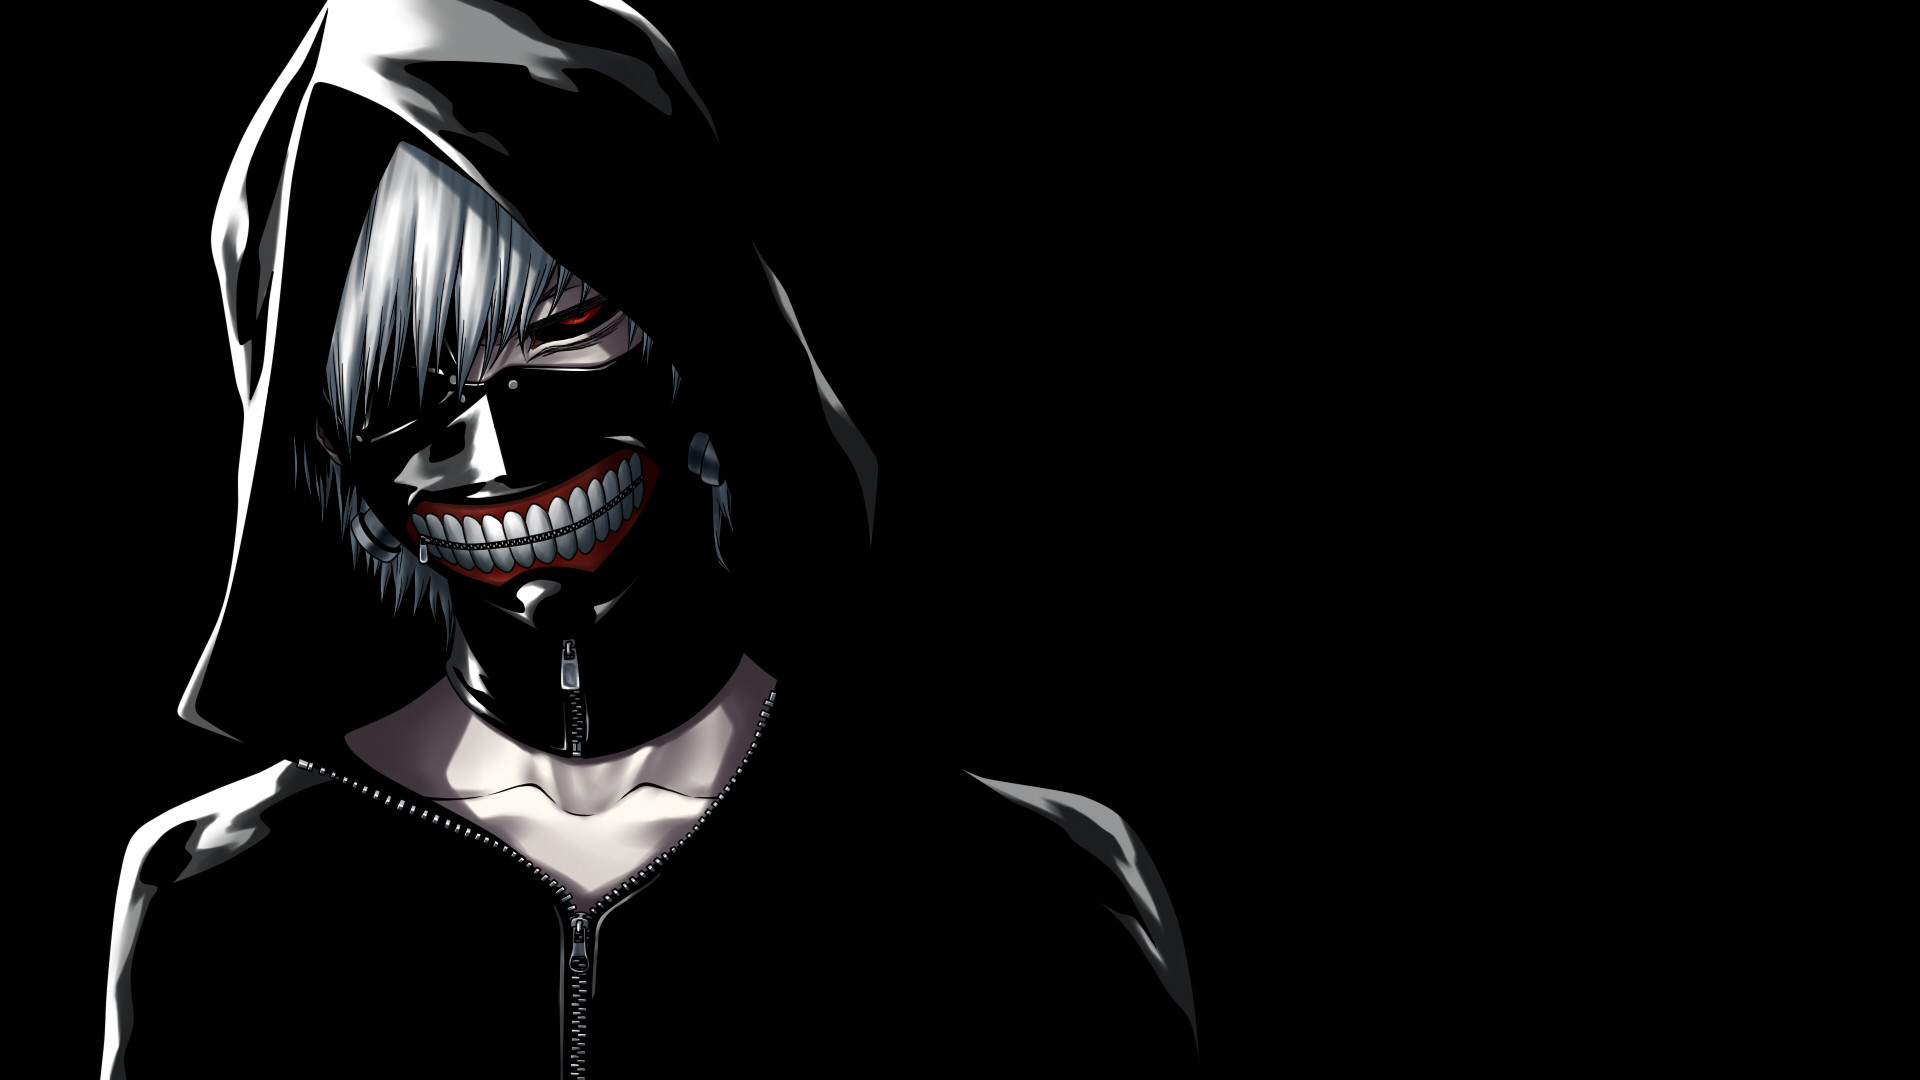 See more ideas about tokyo ghoul, ghoul, tokyo ghoul wallpapers. Tokyo Ghoul iPhone Wallpaper (76+ images)